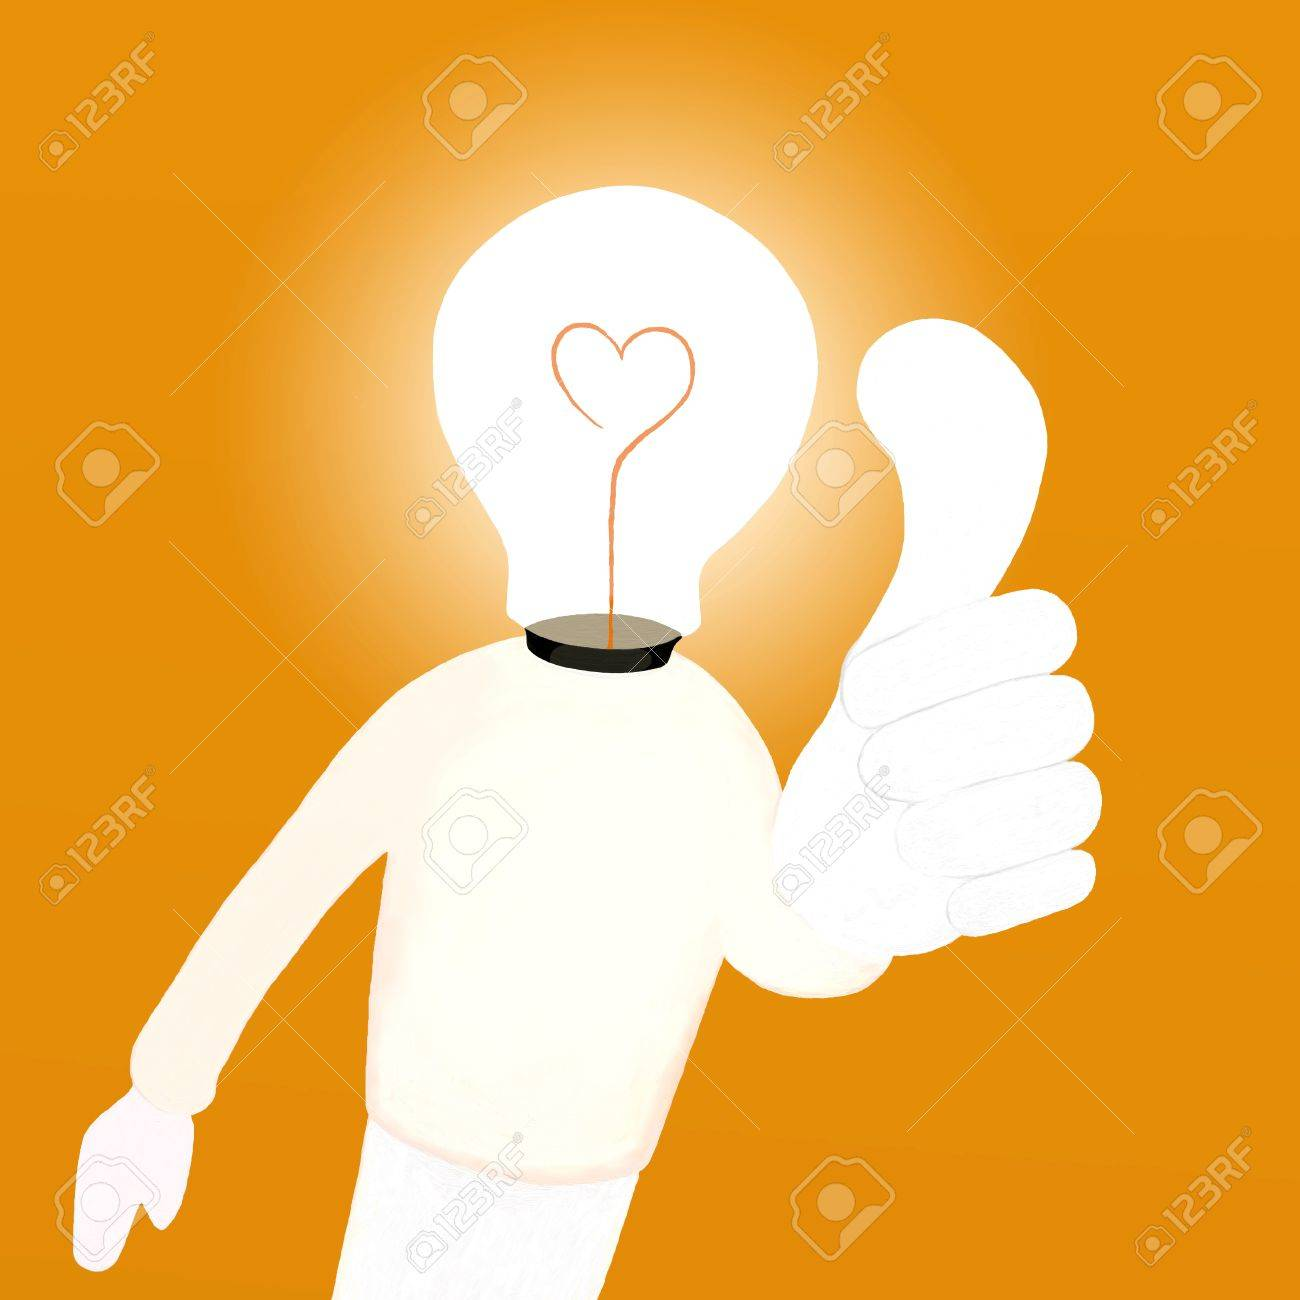 Idea Light Bulb Cartoon